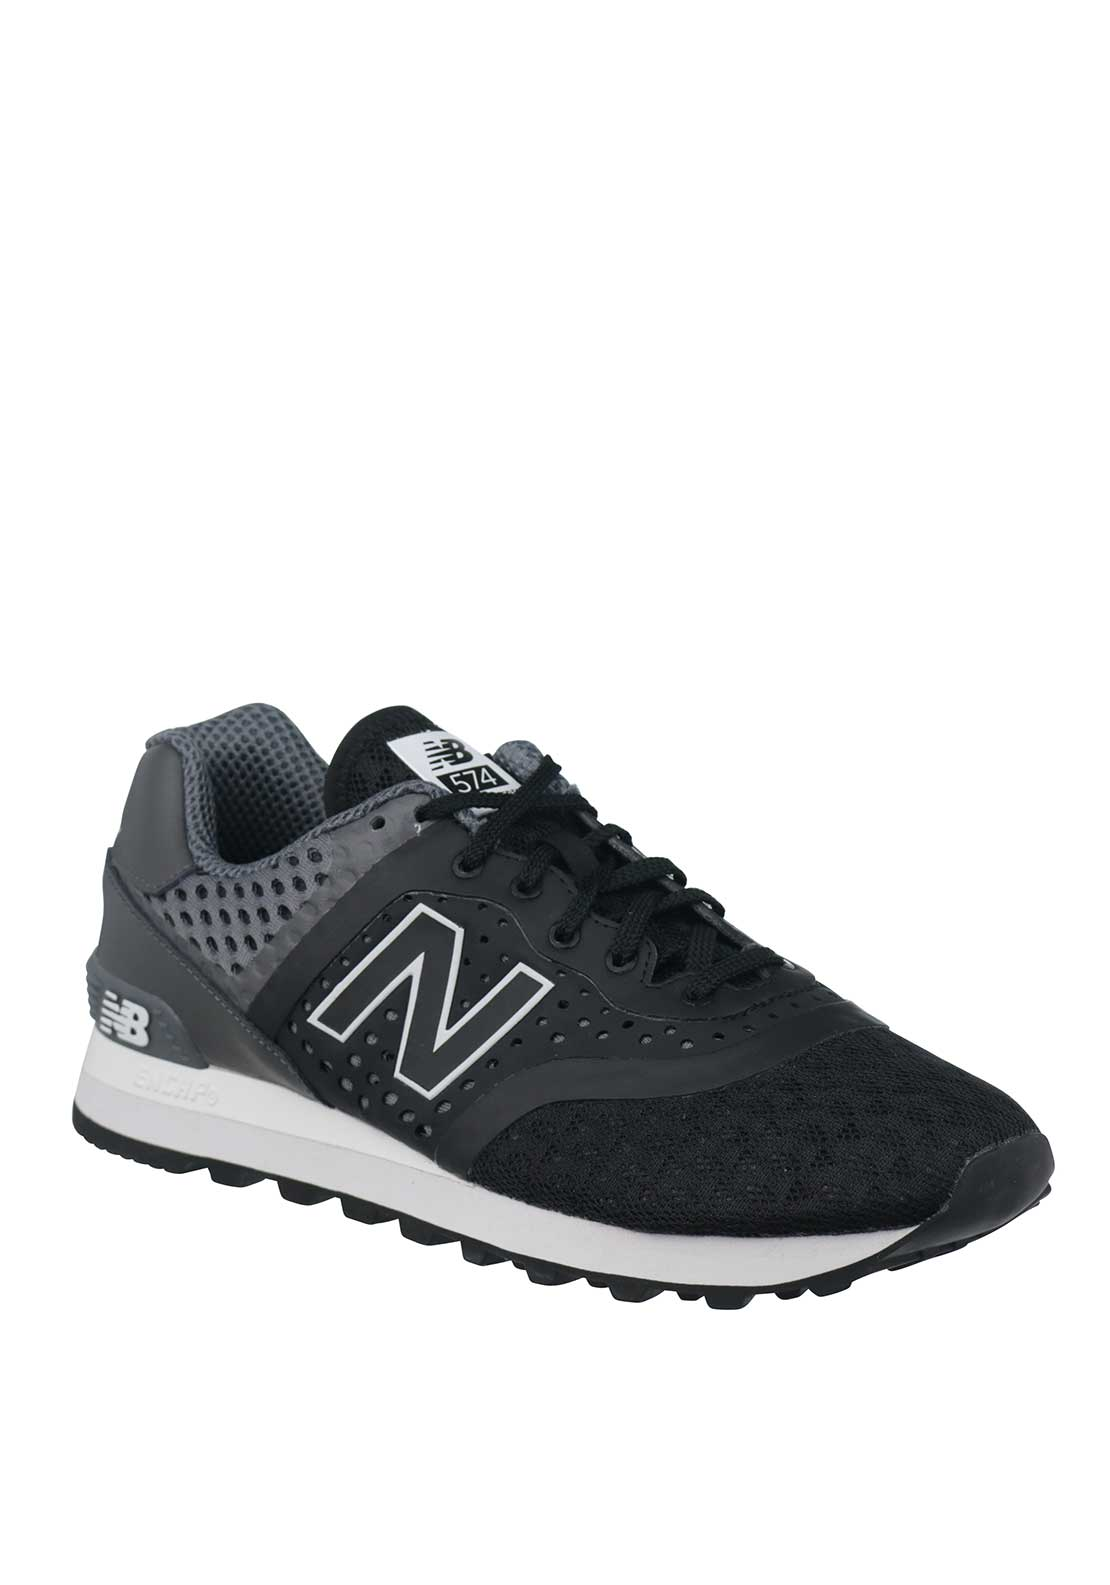 New Balance Mens 574 Re-engineered Trainers, Black